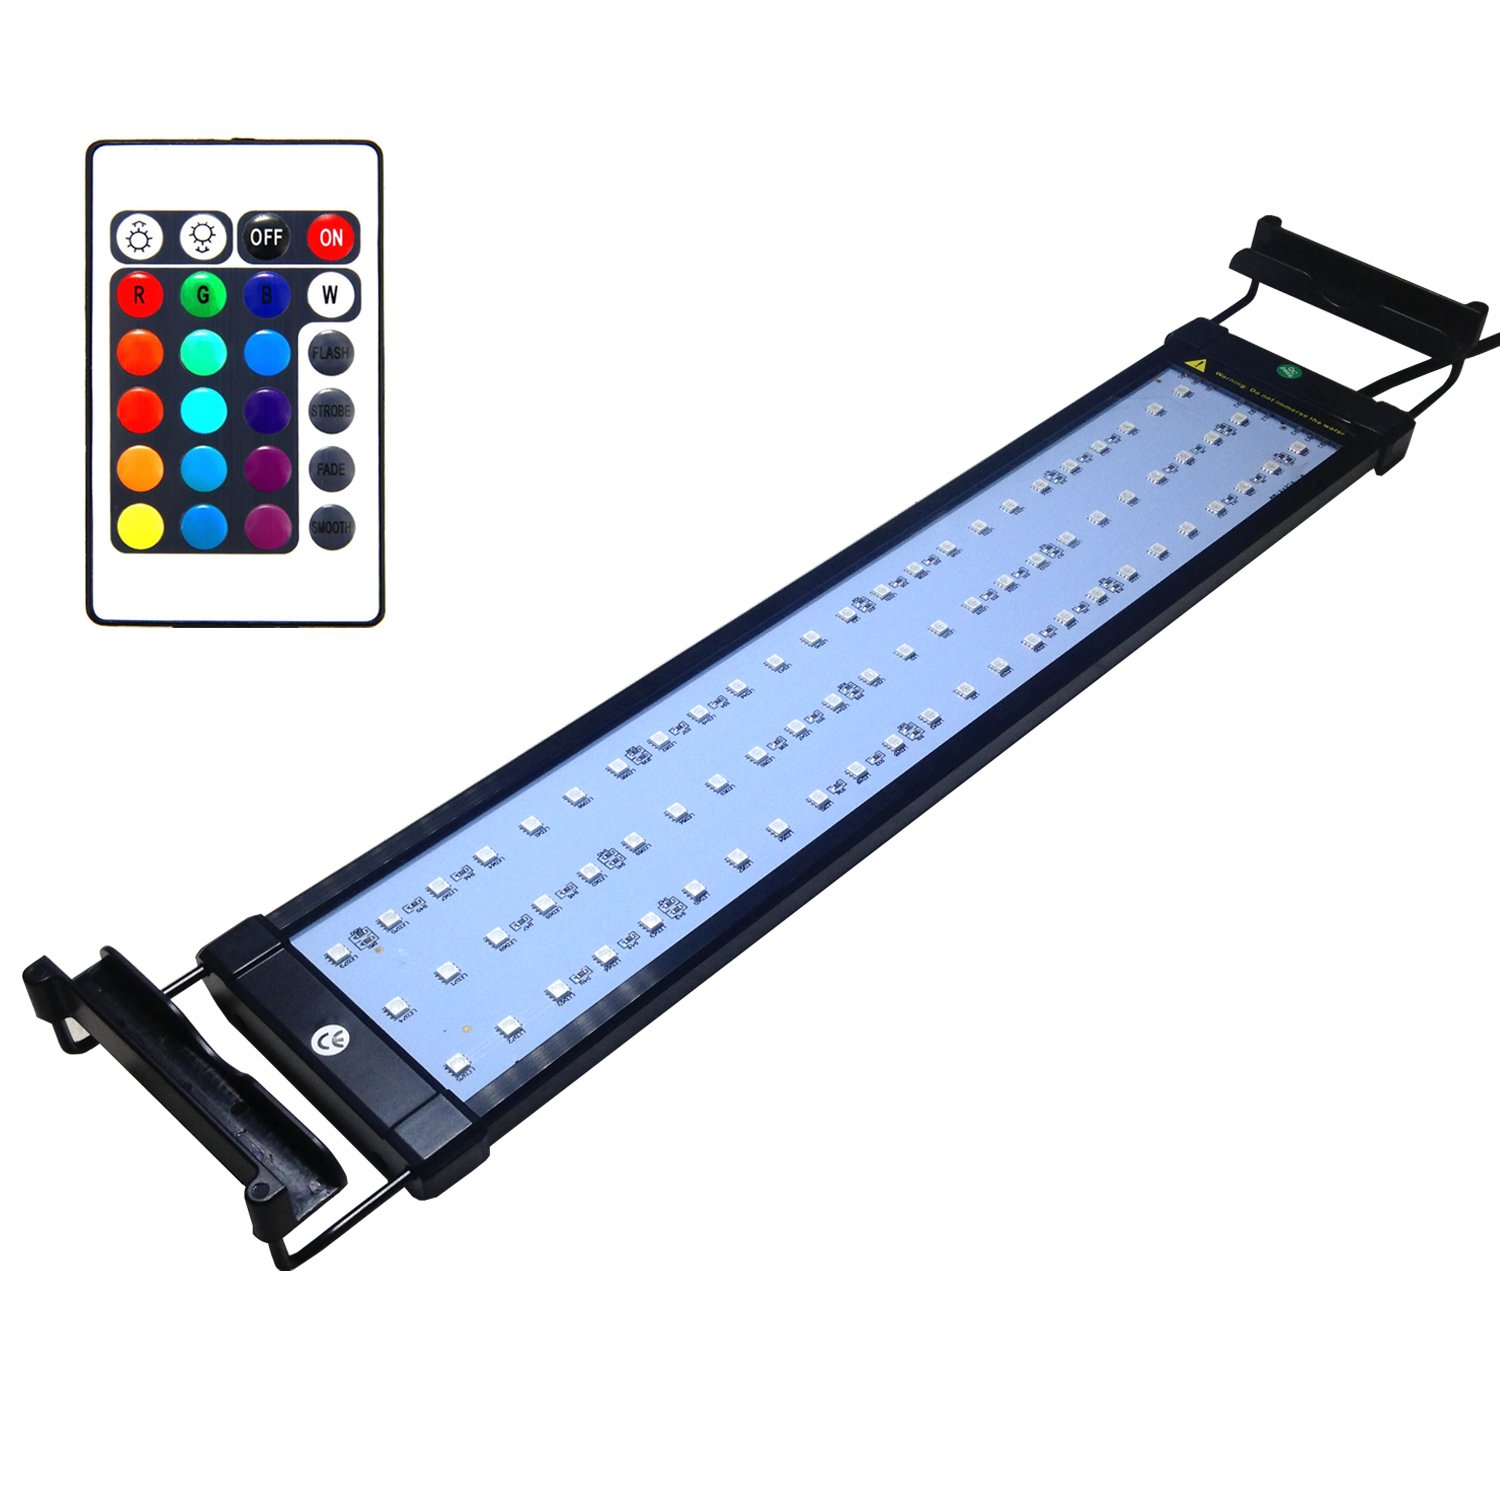 Fish tank led lights - Amazon Com Coodia Aquarium Hood Lighting Color Changing Remote Controlled Dimmable Rgbw Led Light For Aquarium Fish Tank High Quality Extendable Upto 28